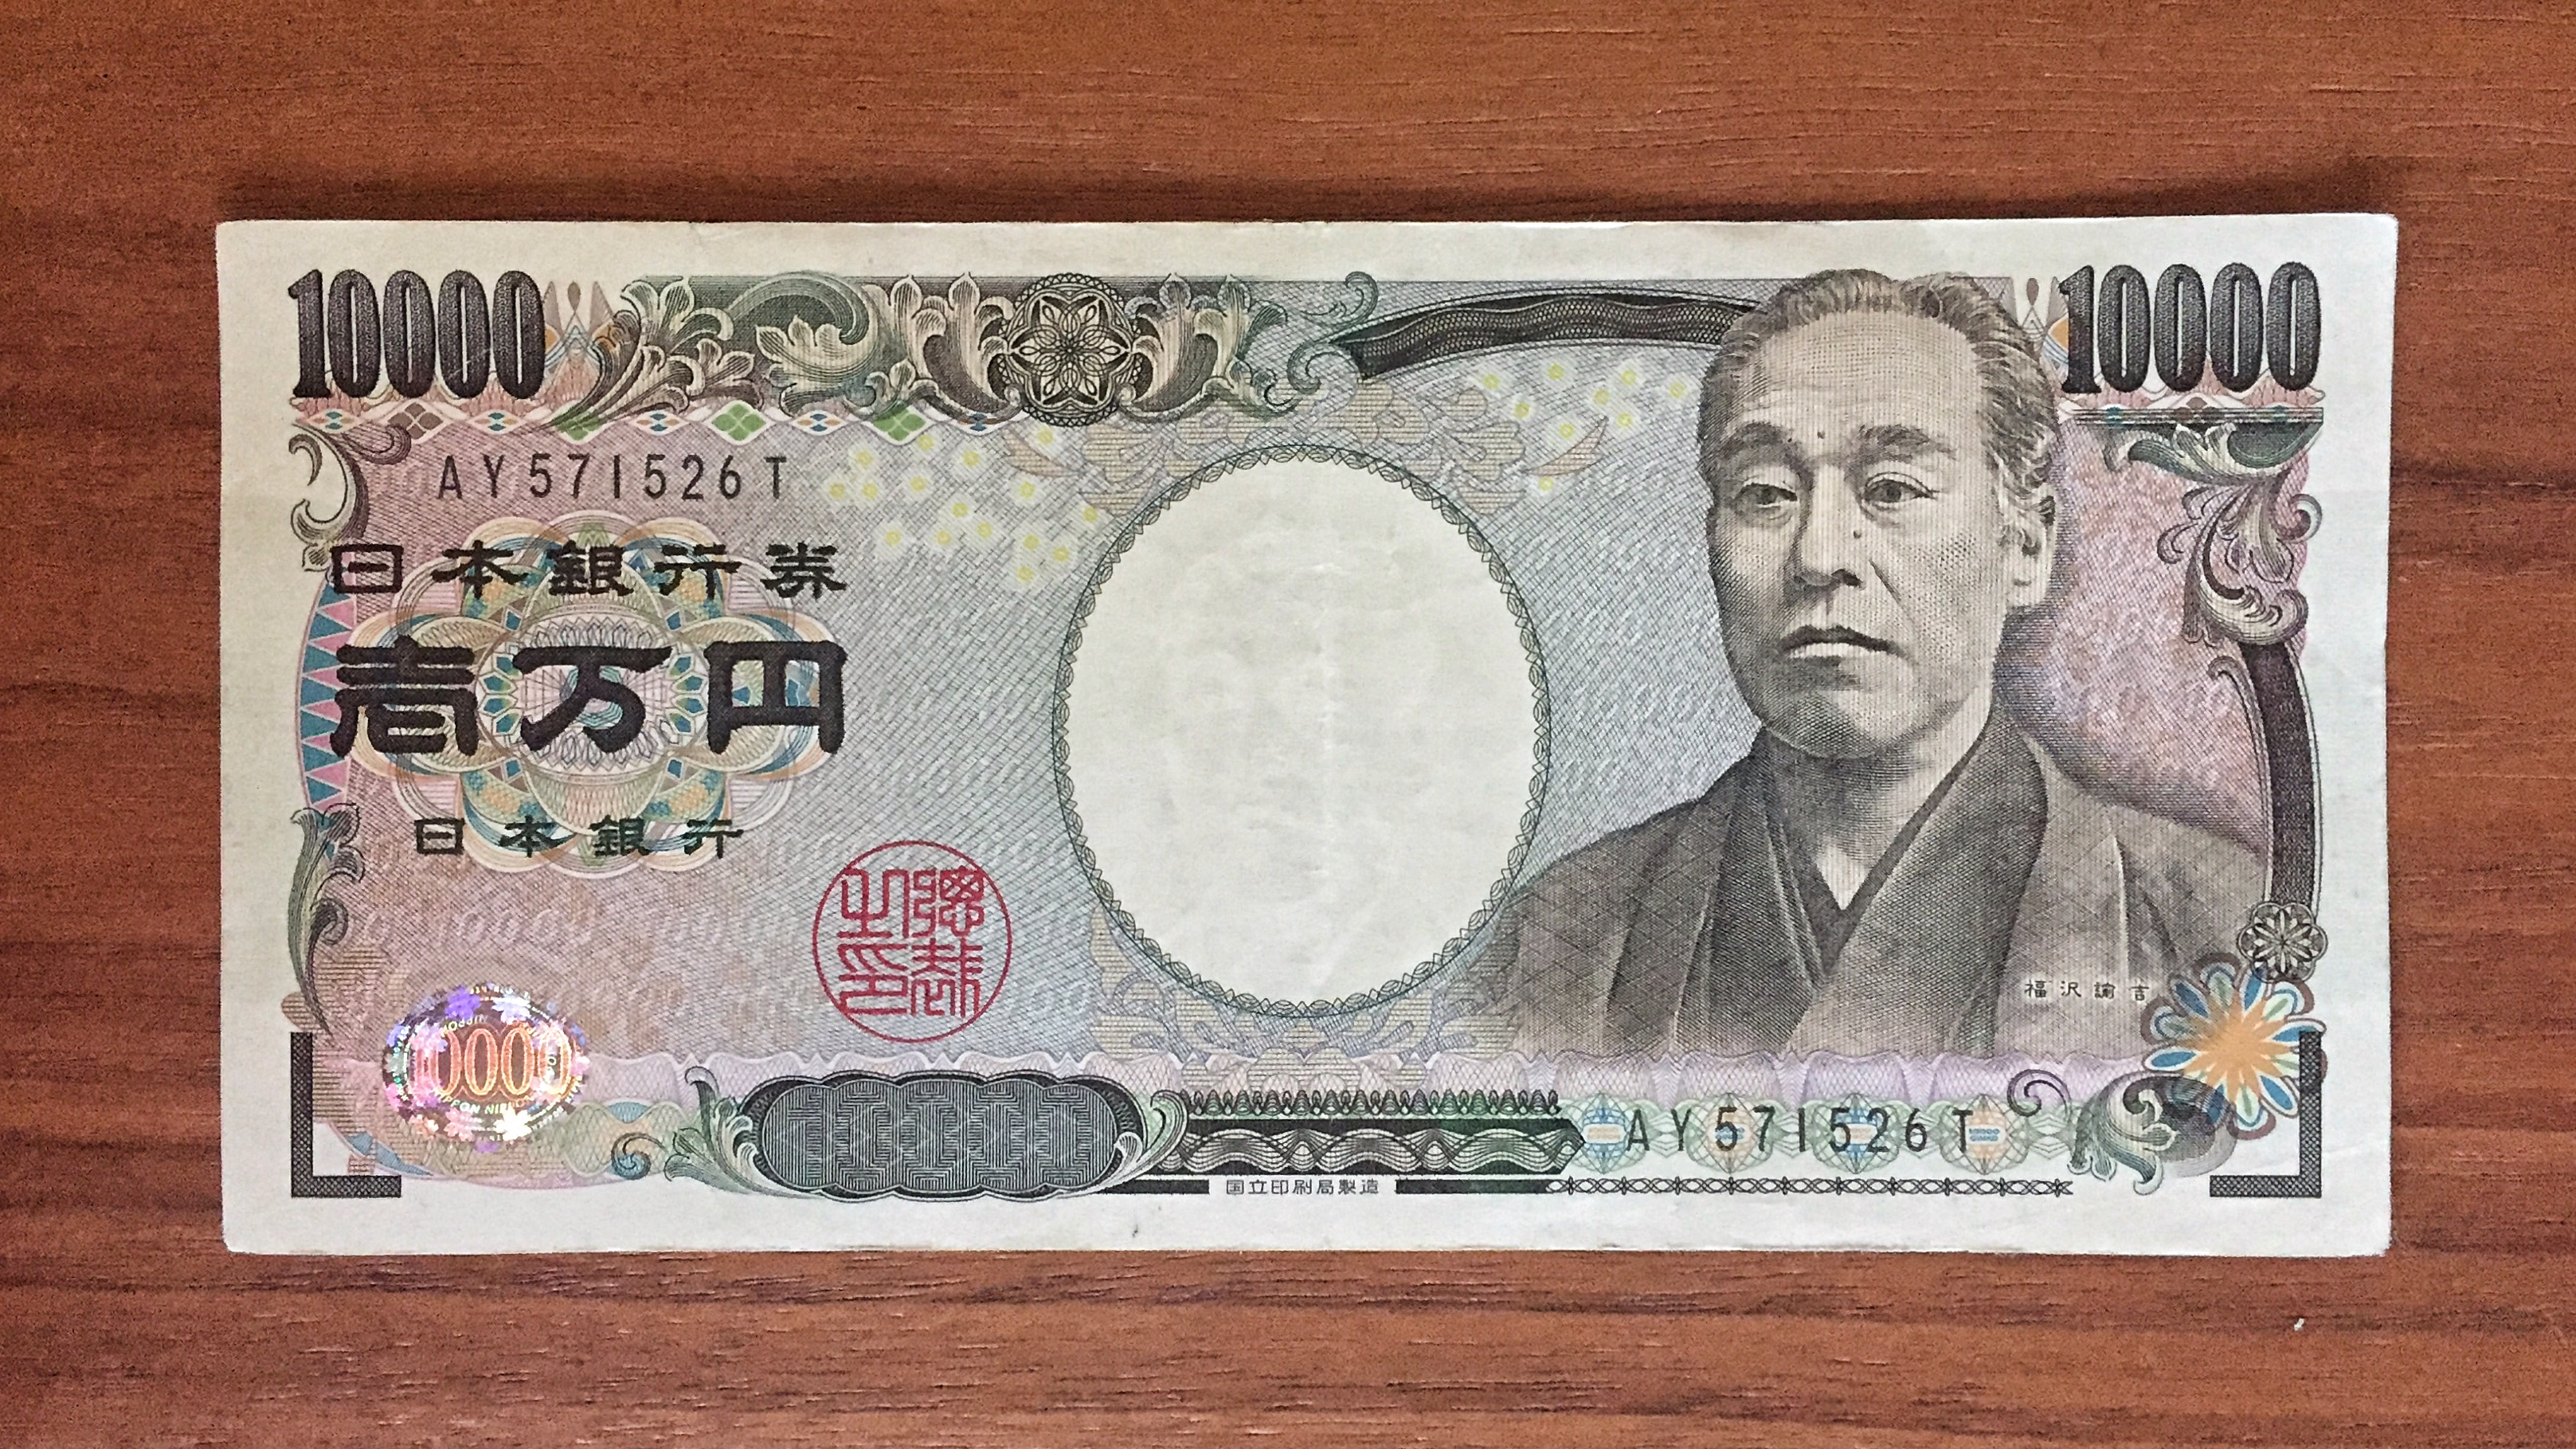 bank-notes-of-japan-currency-pictures-efukt-dick-too-big